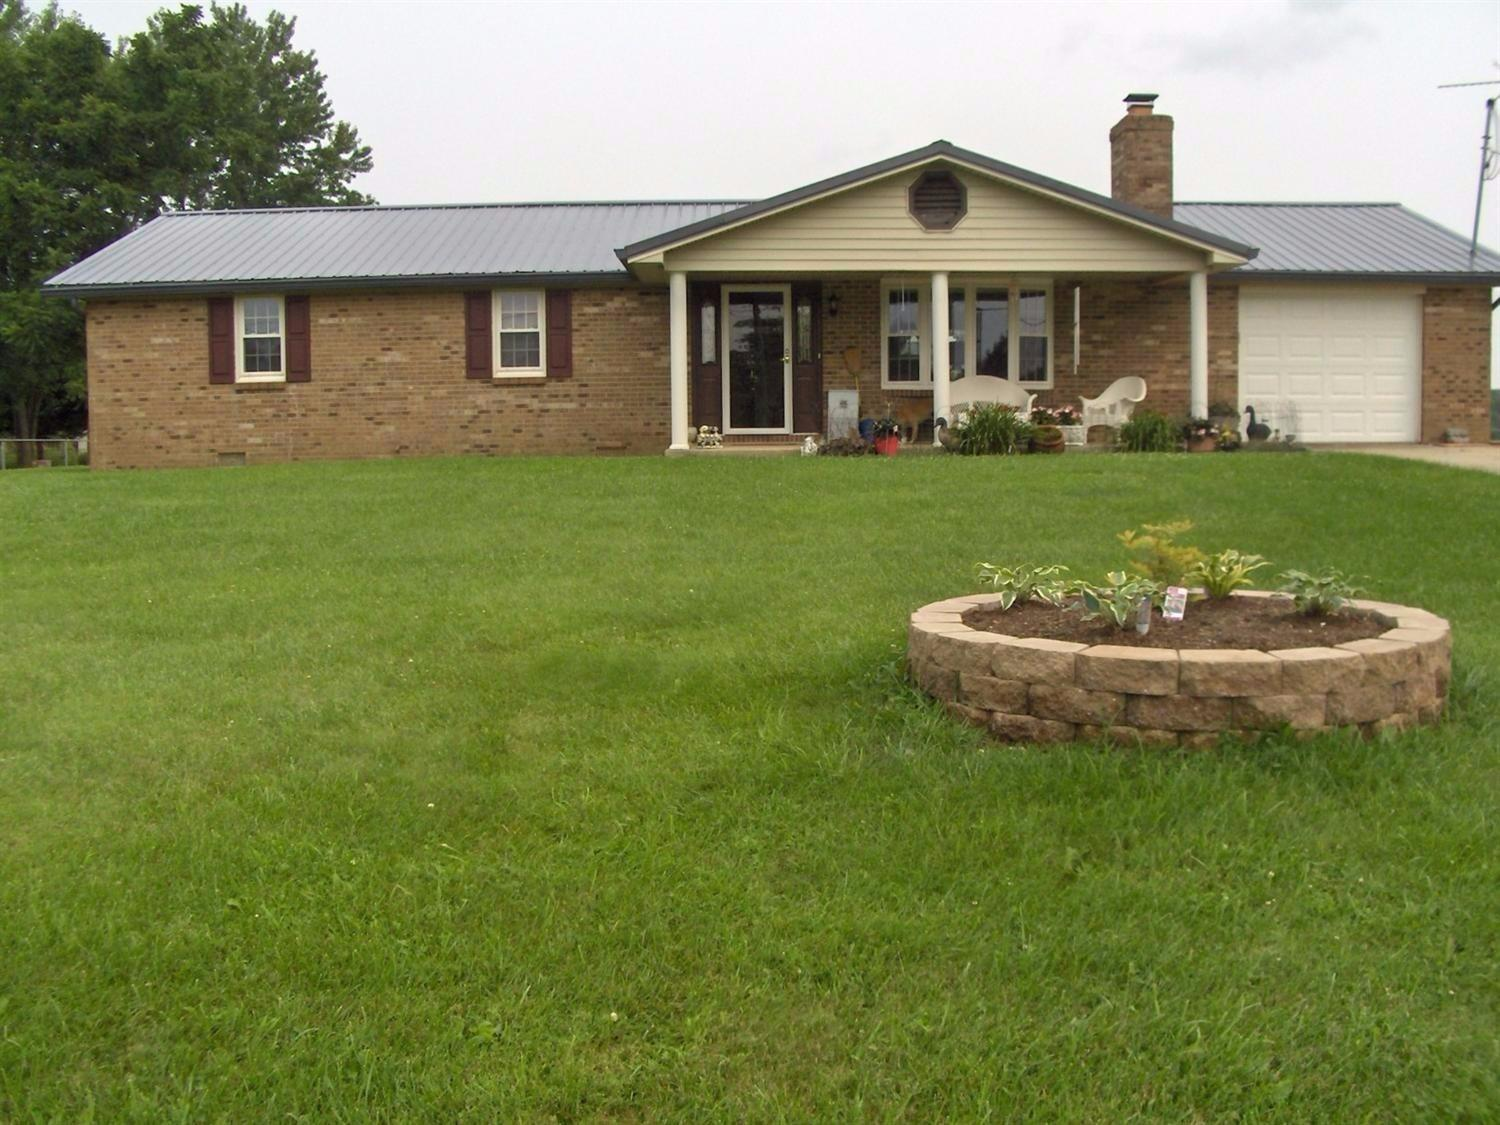 473 Courtney Rd, Crittenden, KY 41030